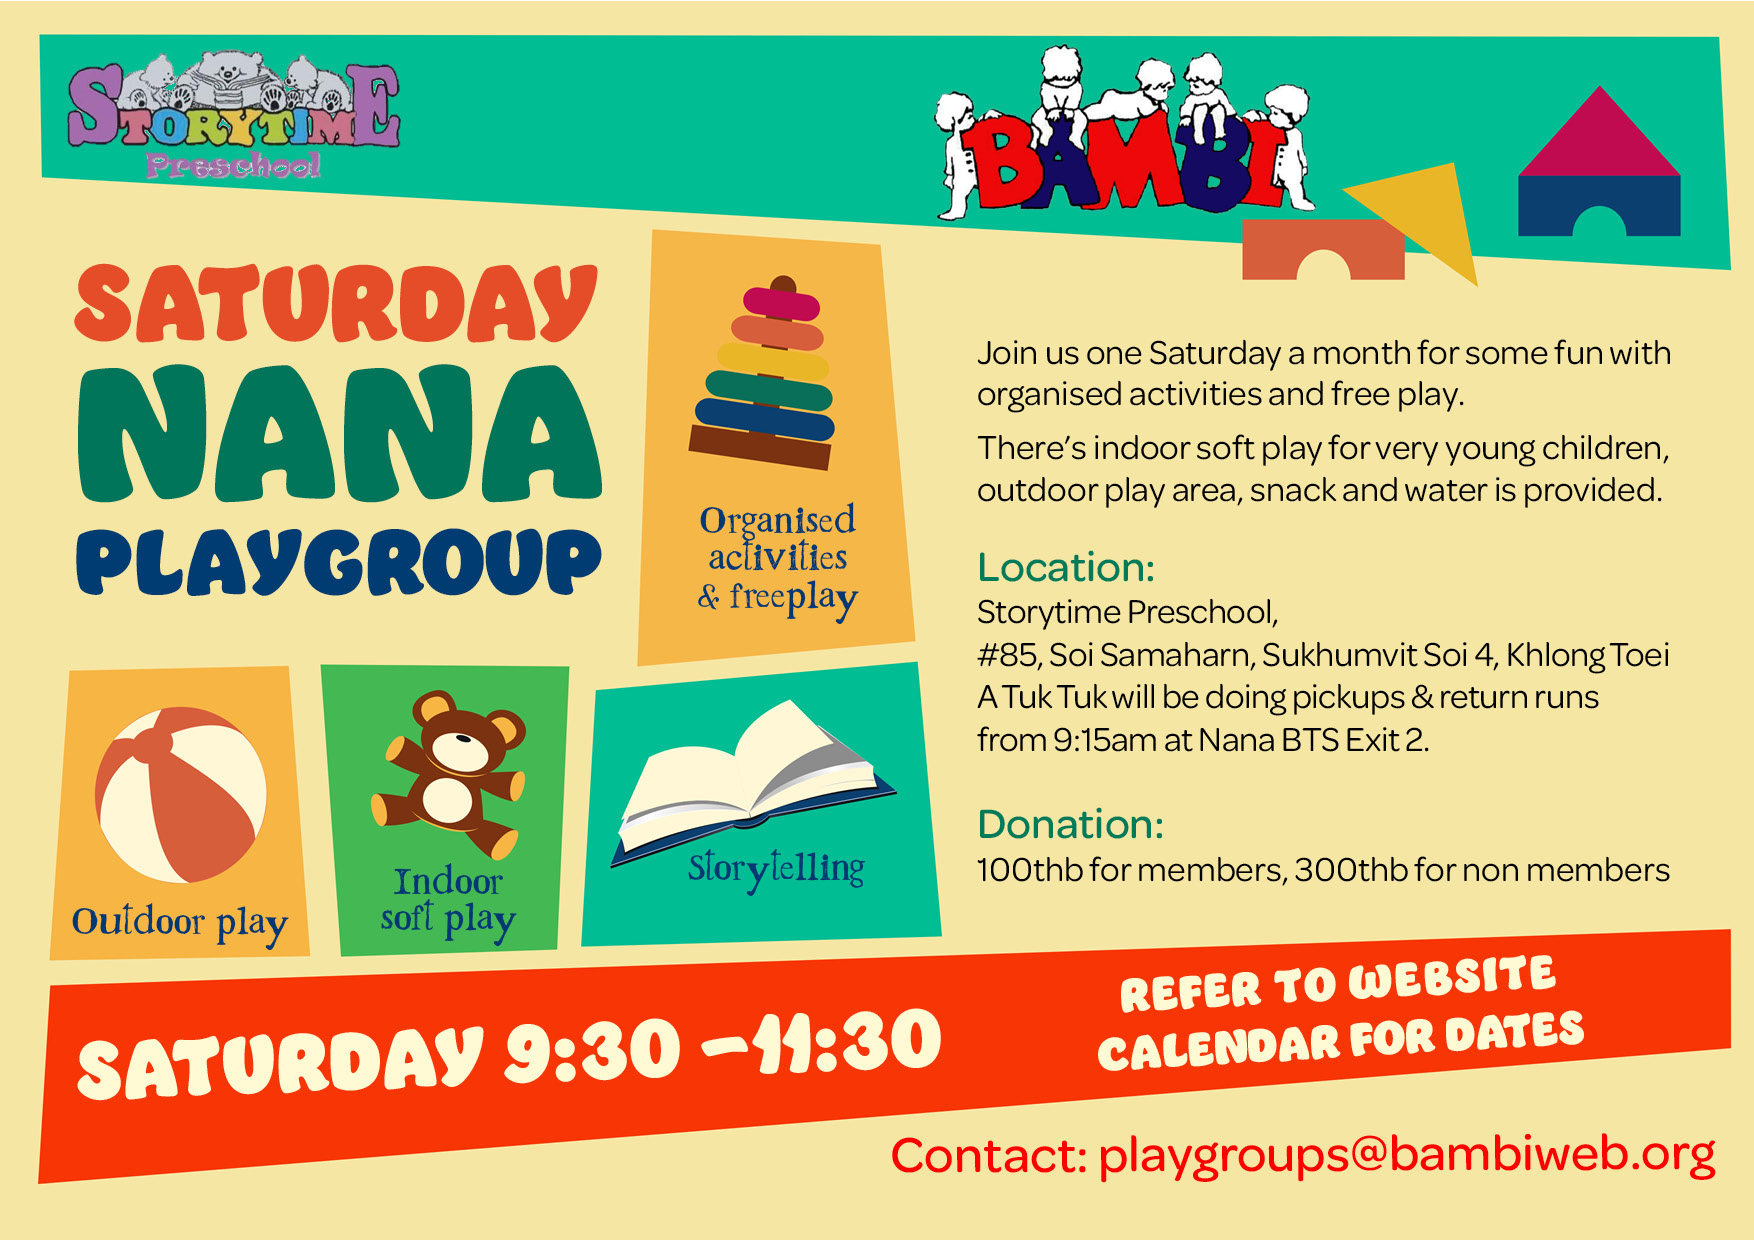 Saturday Nana Playgroup